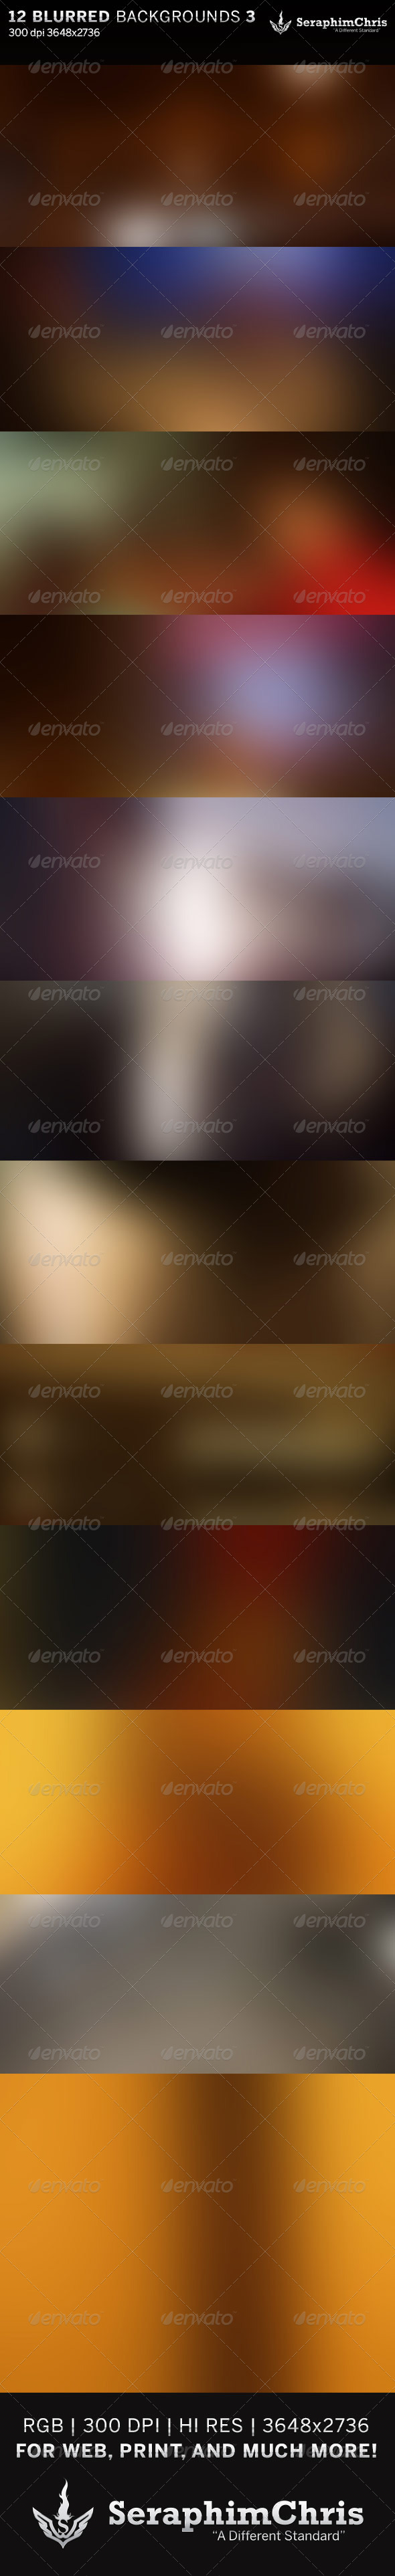 GraphicRiver 12 Abstract Blurred HD Backgrounds Set 3 6416582